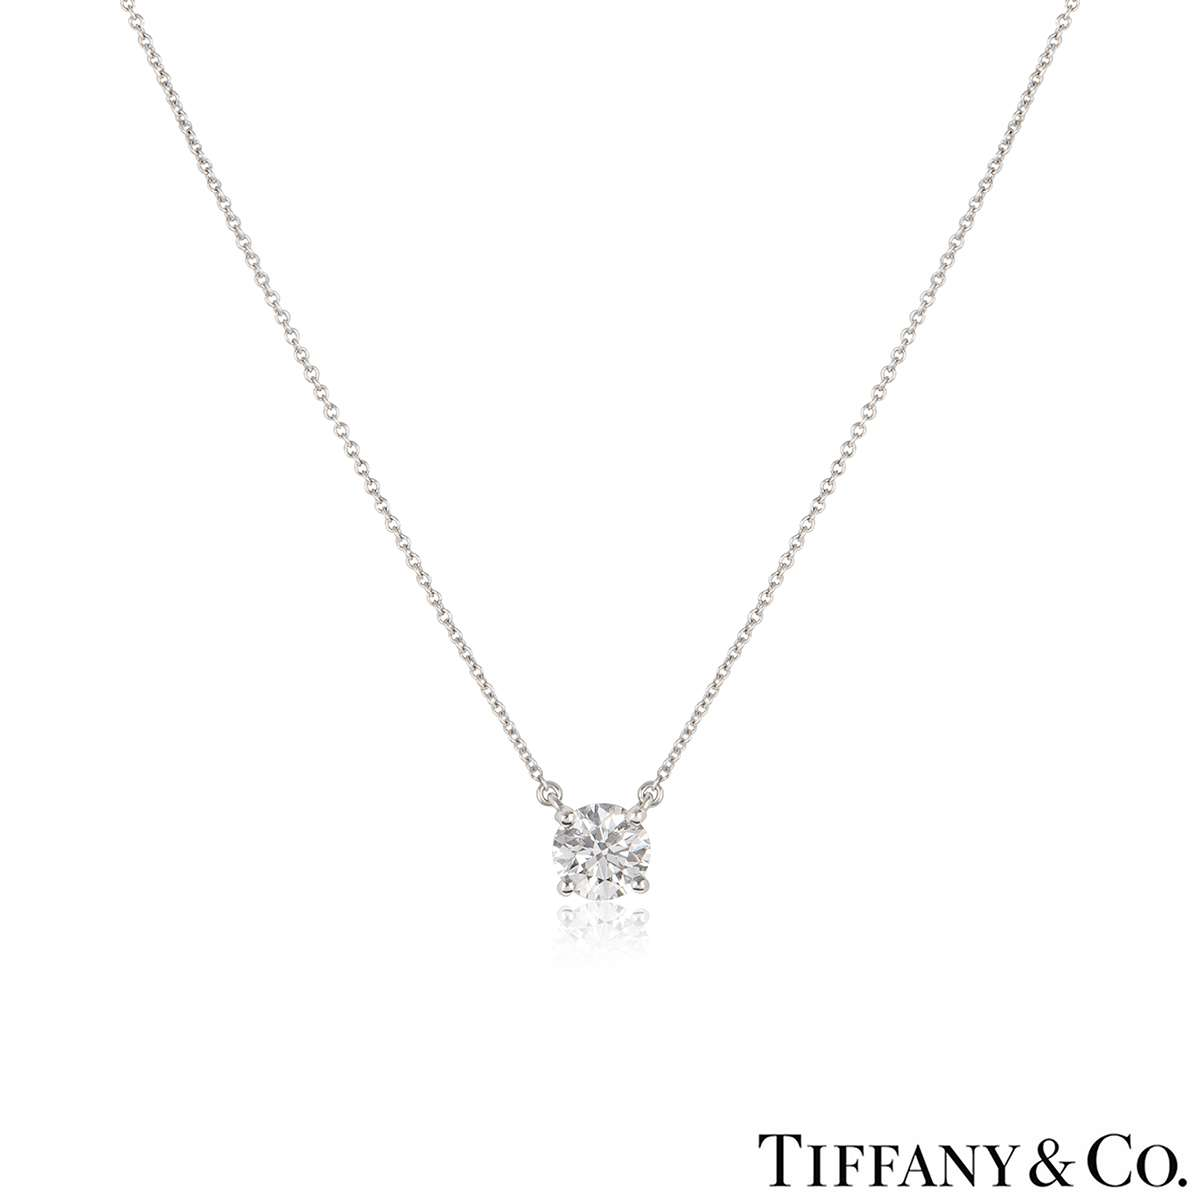 Tiffany & Co. Platinum Diamond Pendant 1.29ct H/VS1 XXX